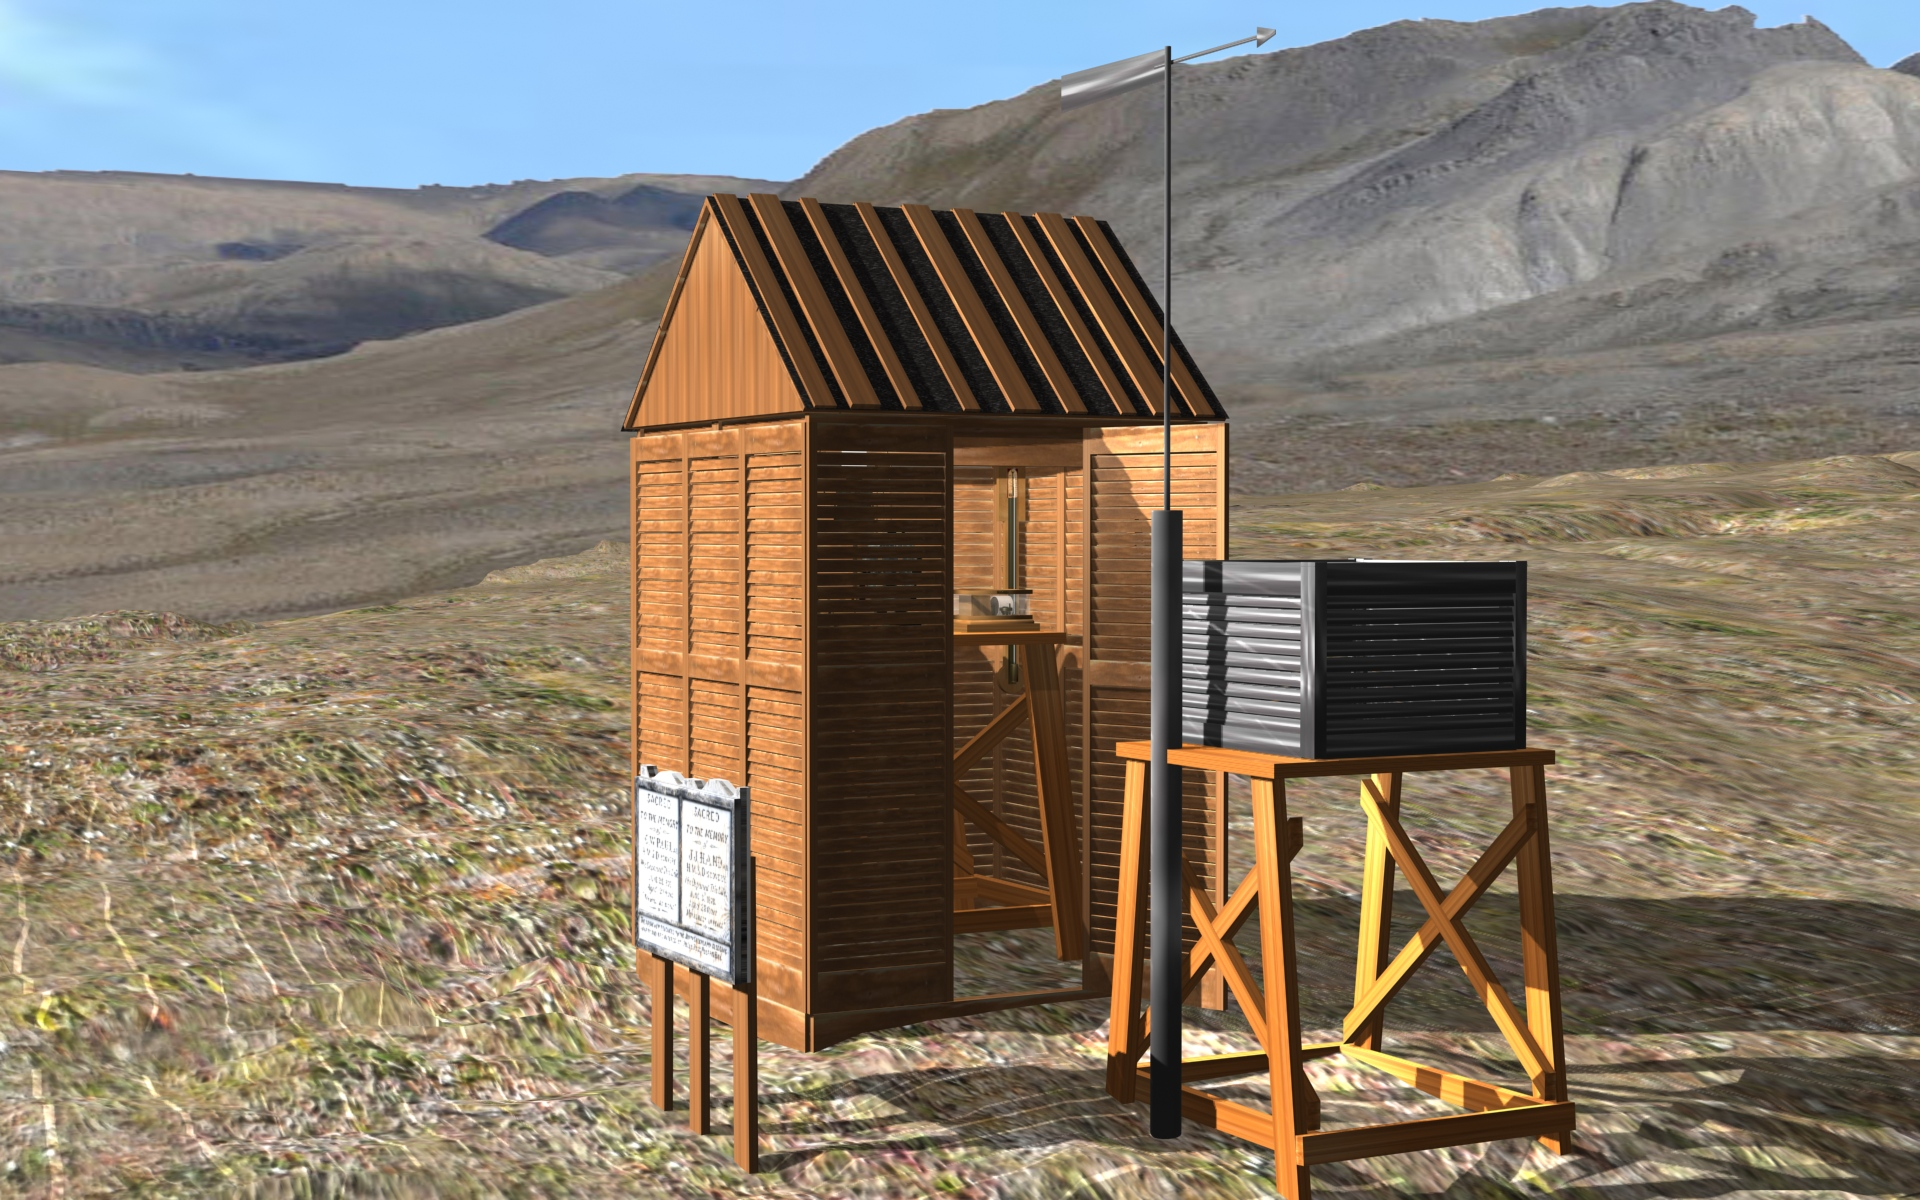 Computer reconstruction of the magnetic observatory used by The Lady Franklin Bay Expedition.